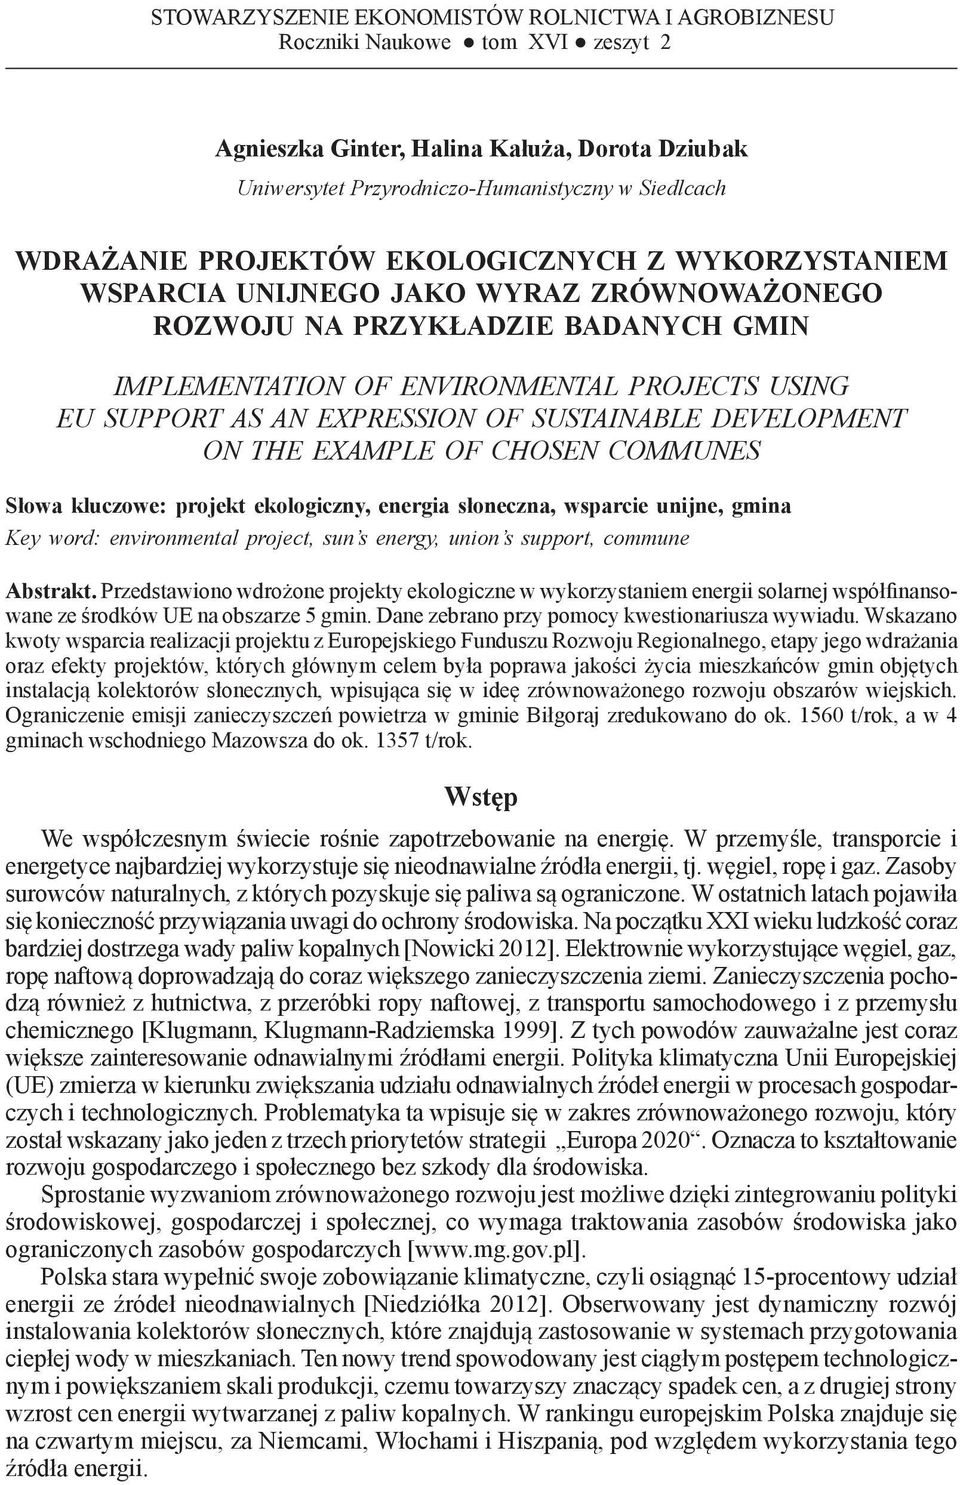 ENVIRONMENTAL PROJECTS USING EU SUPPORT AS AN EXPRESSION OF SUSTAINABLE DEVELOPMENT ON THE EXAMPLE OF CHOSEN COMMUNES Słowa kluczowe: projekt ekologiczny, energia słoneczna, wsparcie unijne, gmina